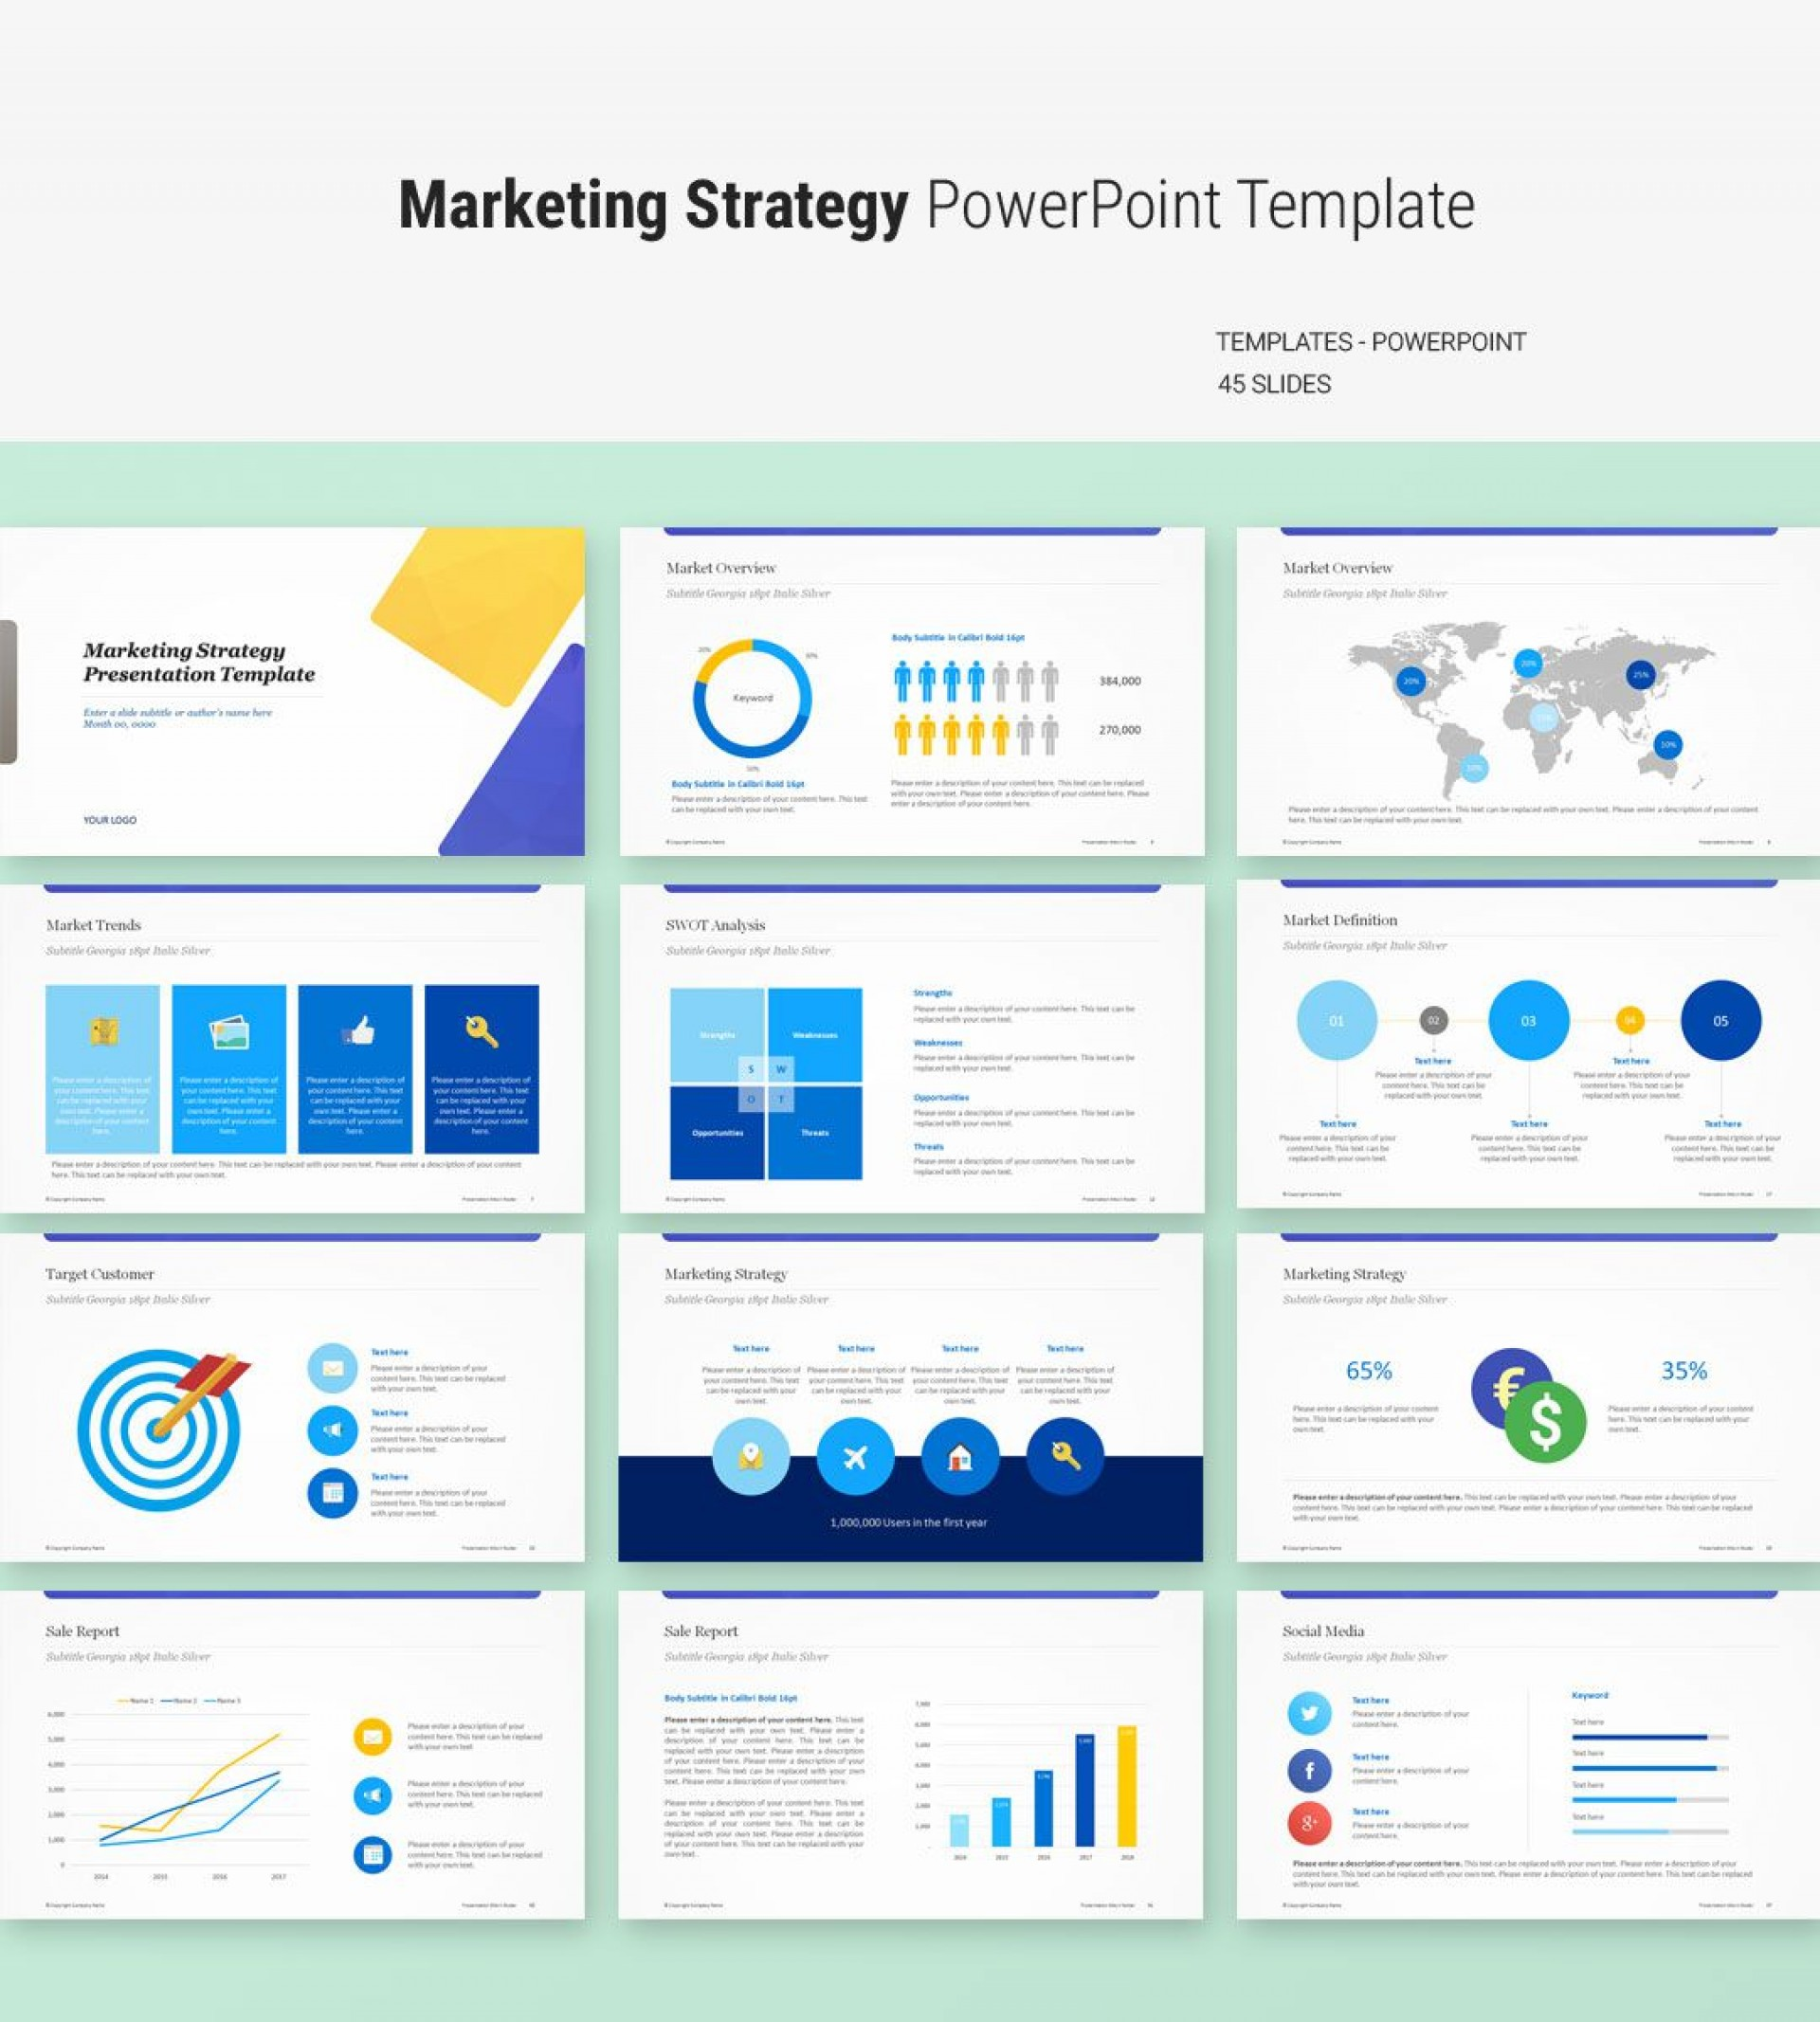 006 Outstanding Marketing Campaign Plan Template Free High Def 1920